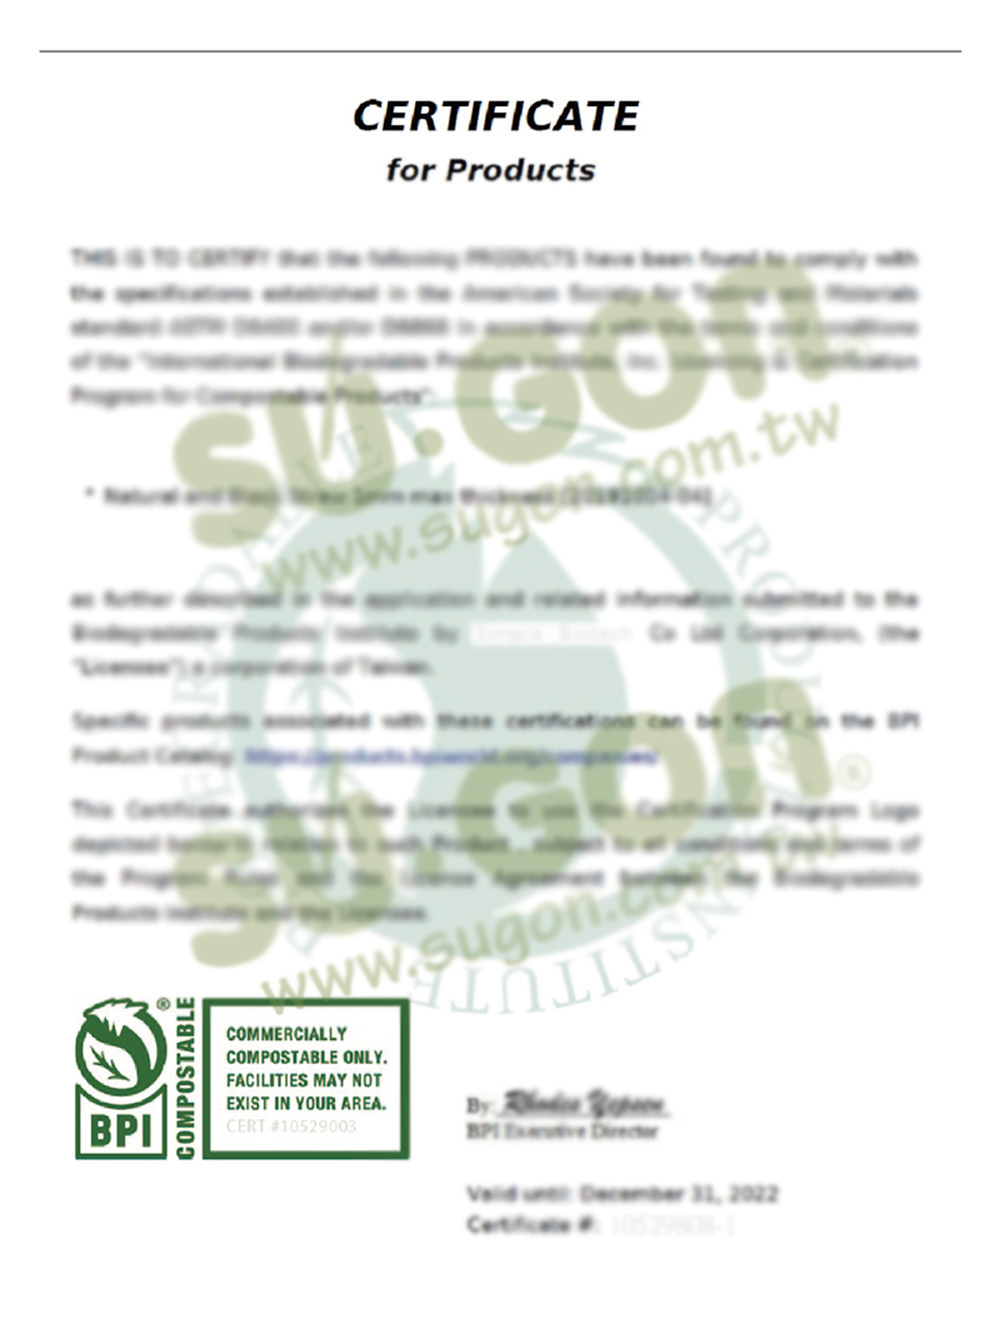 SUGON-International Biodegradable Products Institute (BPI)(BPI)